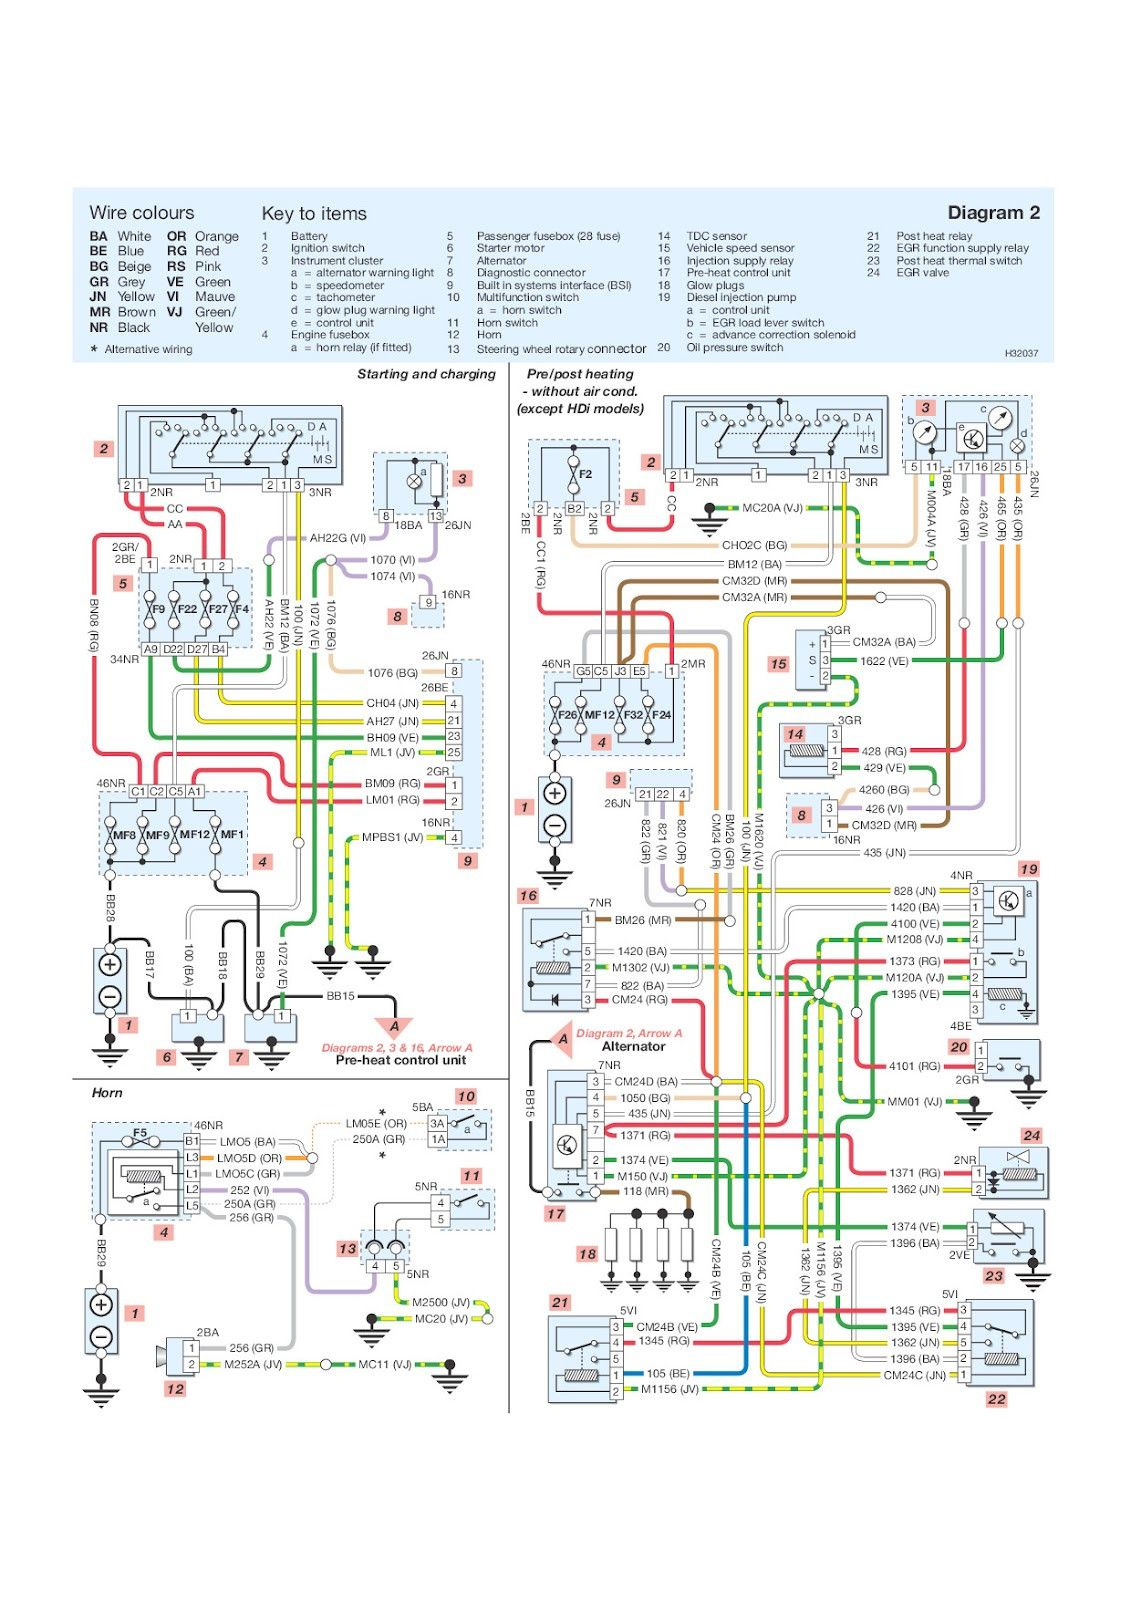 Your Wiring Diagrams Source Peugeot 206 Starting Charging Horn Brilliant  Diagram